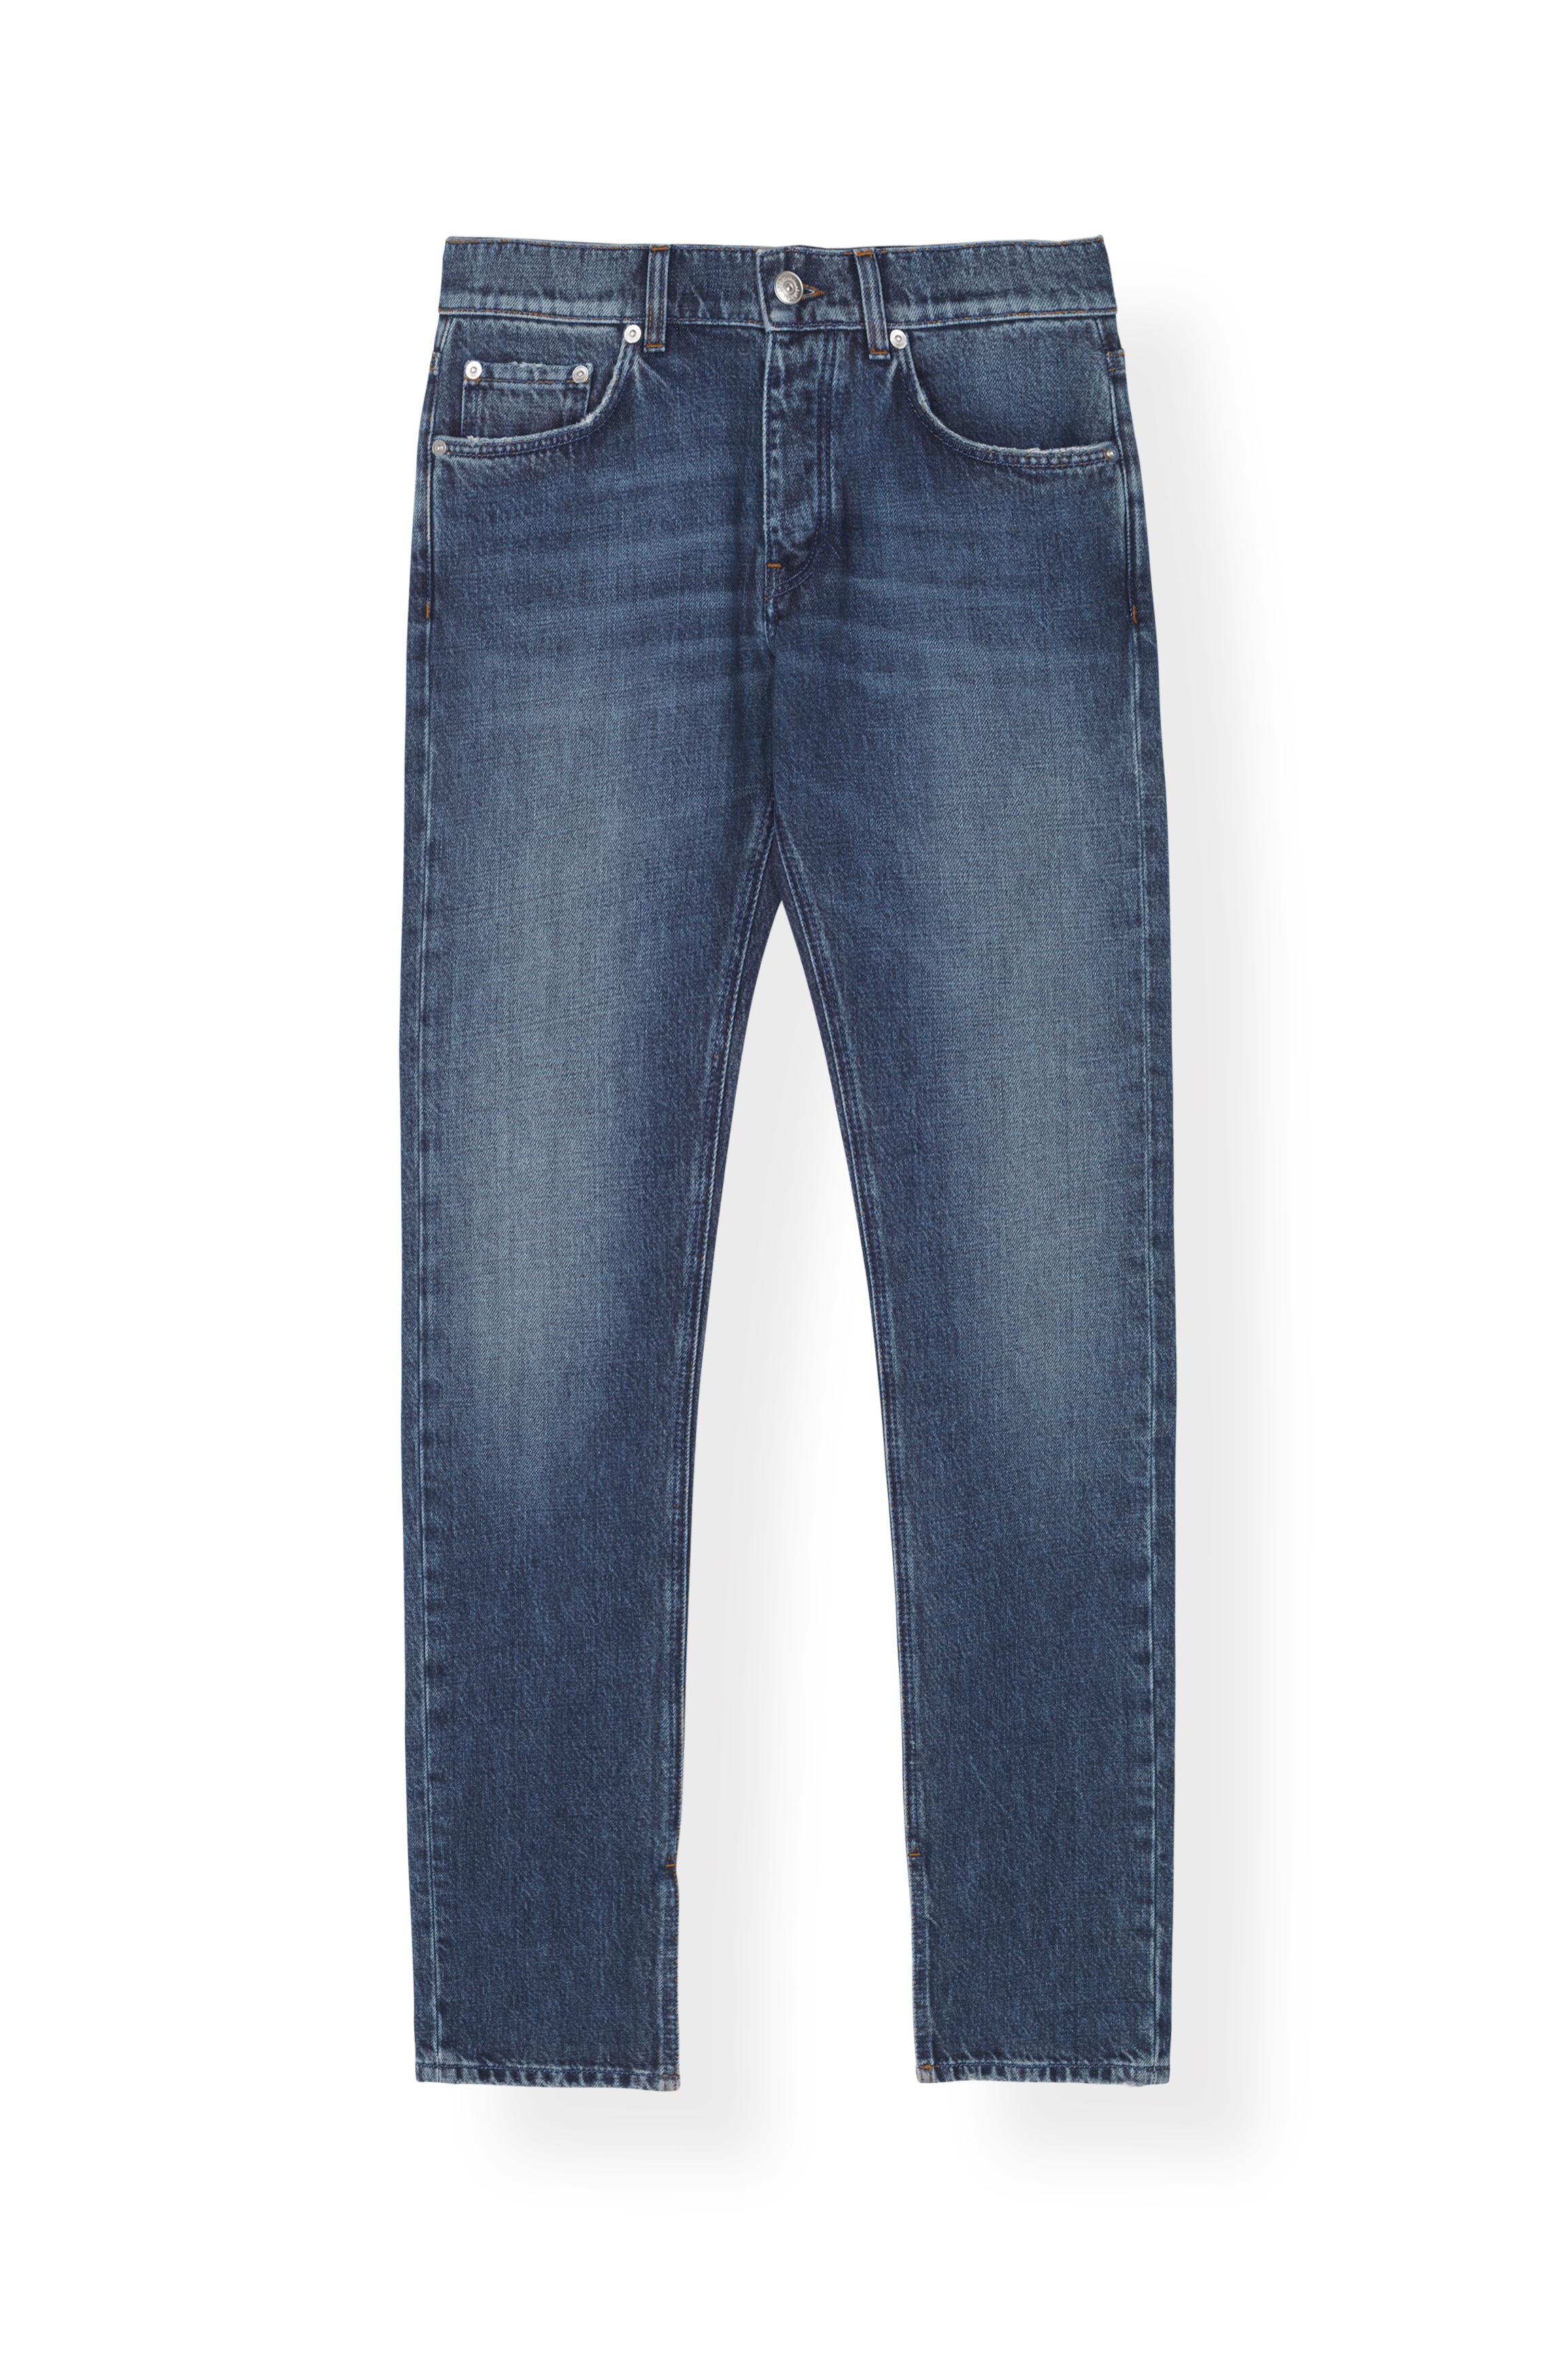 Image of   Ganni F3143 Slit Pants Washed Denim, 698 Medium Dark Denim